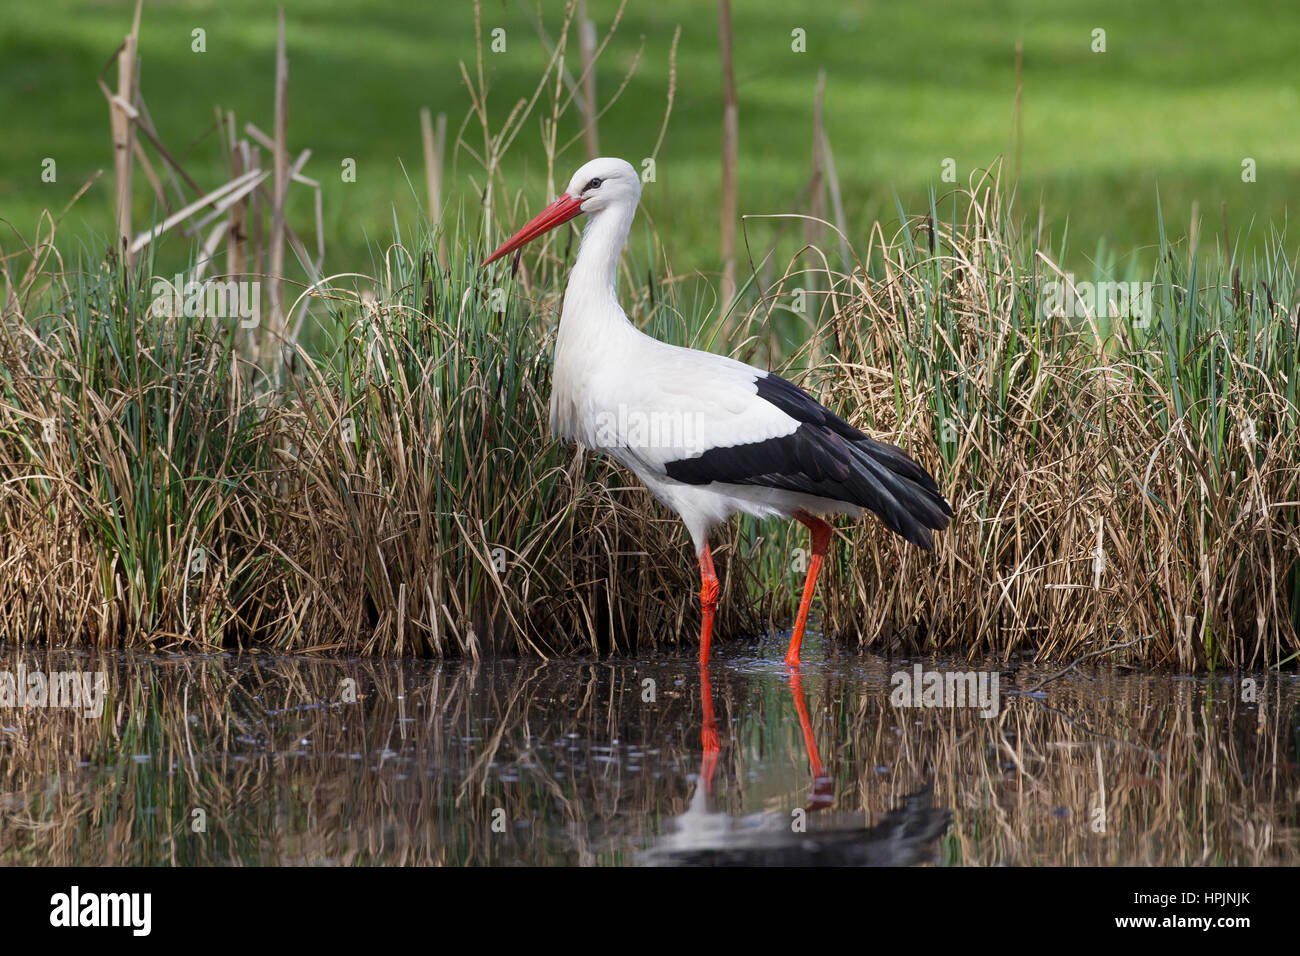 White stork (Ciconia ciconia) foraging in shallow water of brook - Stock Image